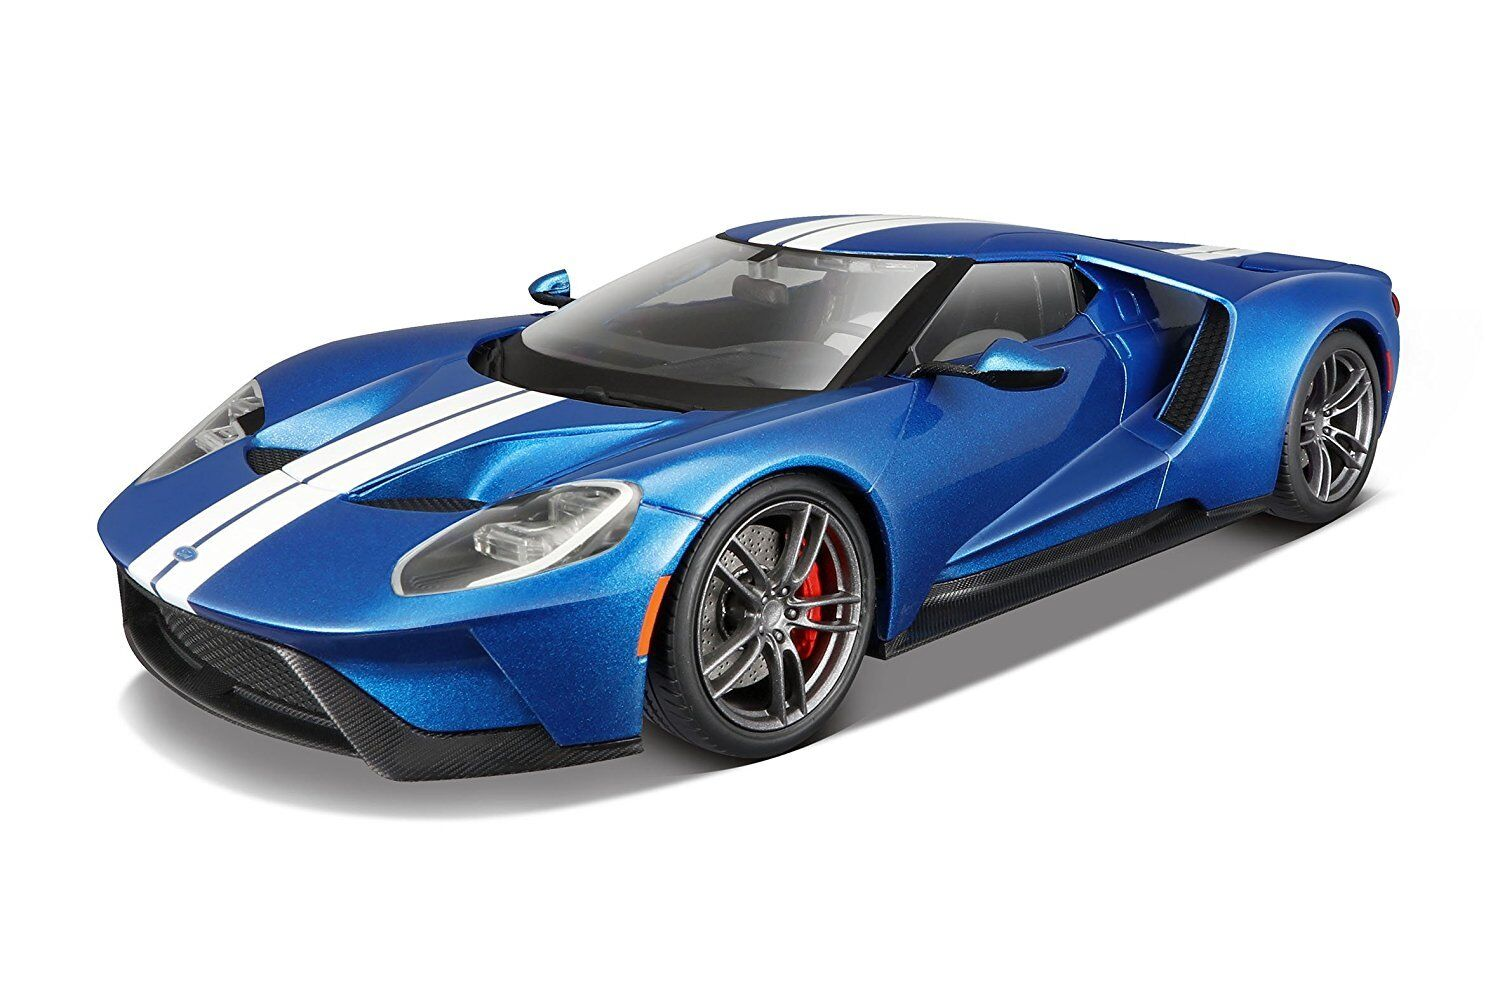 MAISTO 1 18 Exclusive 2017 Ford GT Concept Diecast Model SPORTS RACING CAR Neuf dans sa boîte